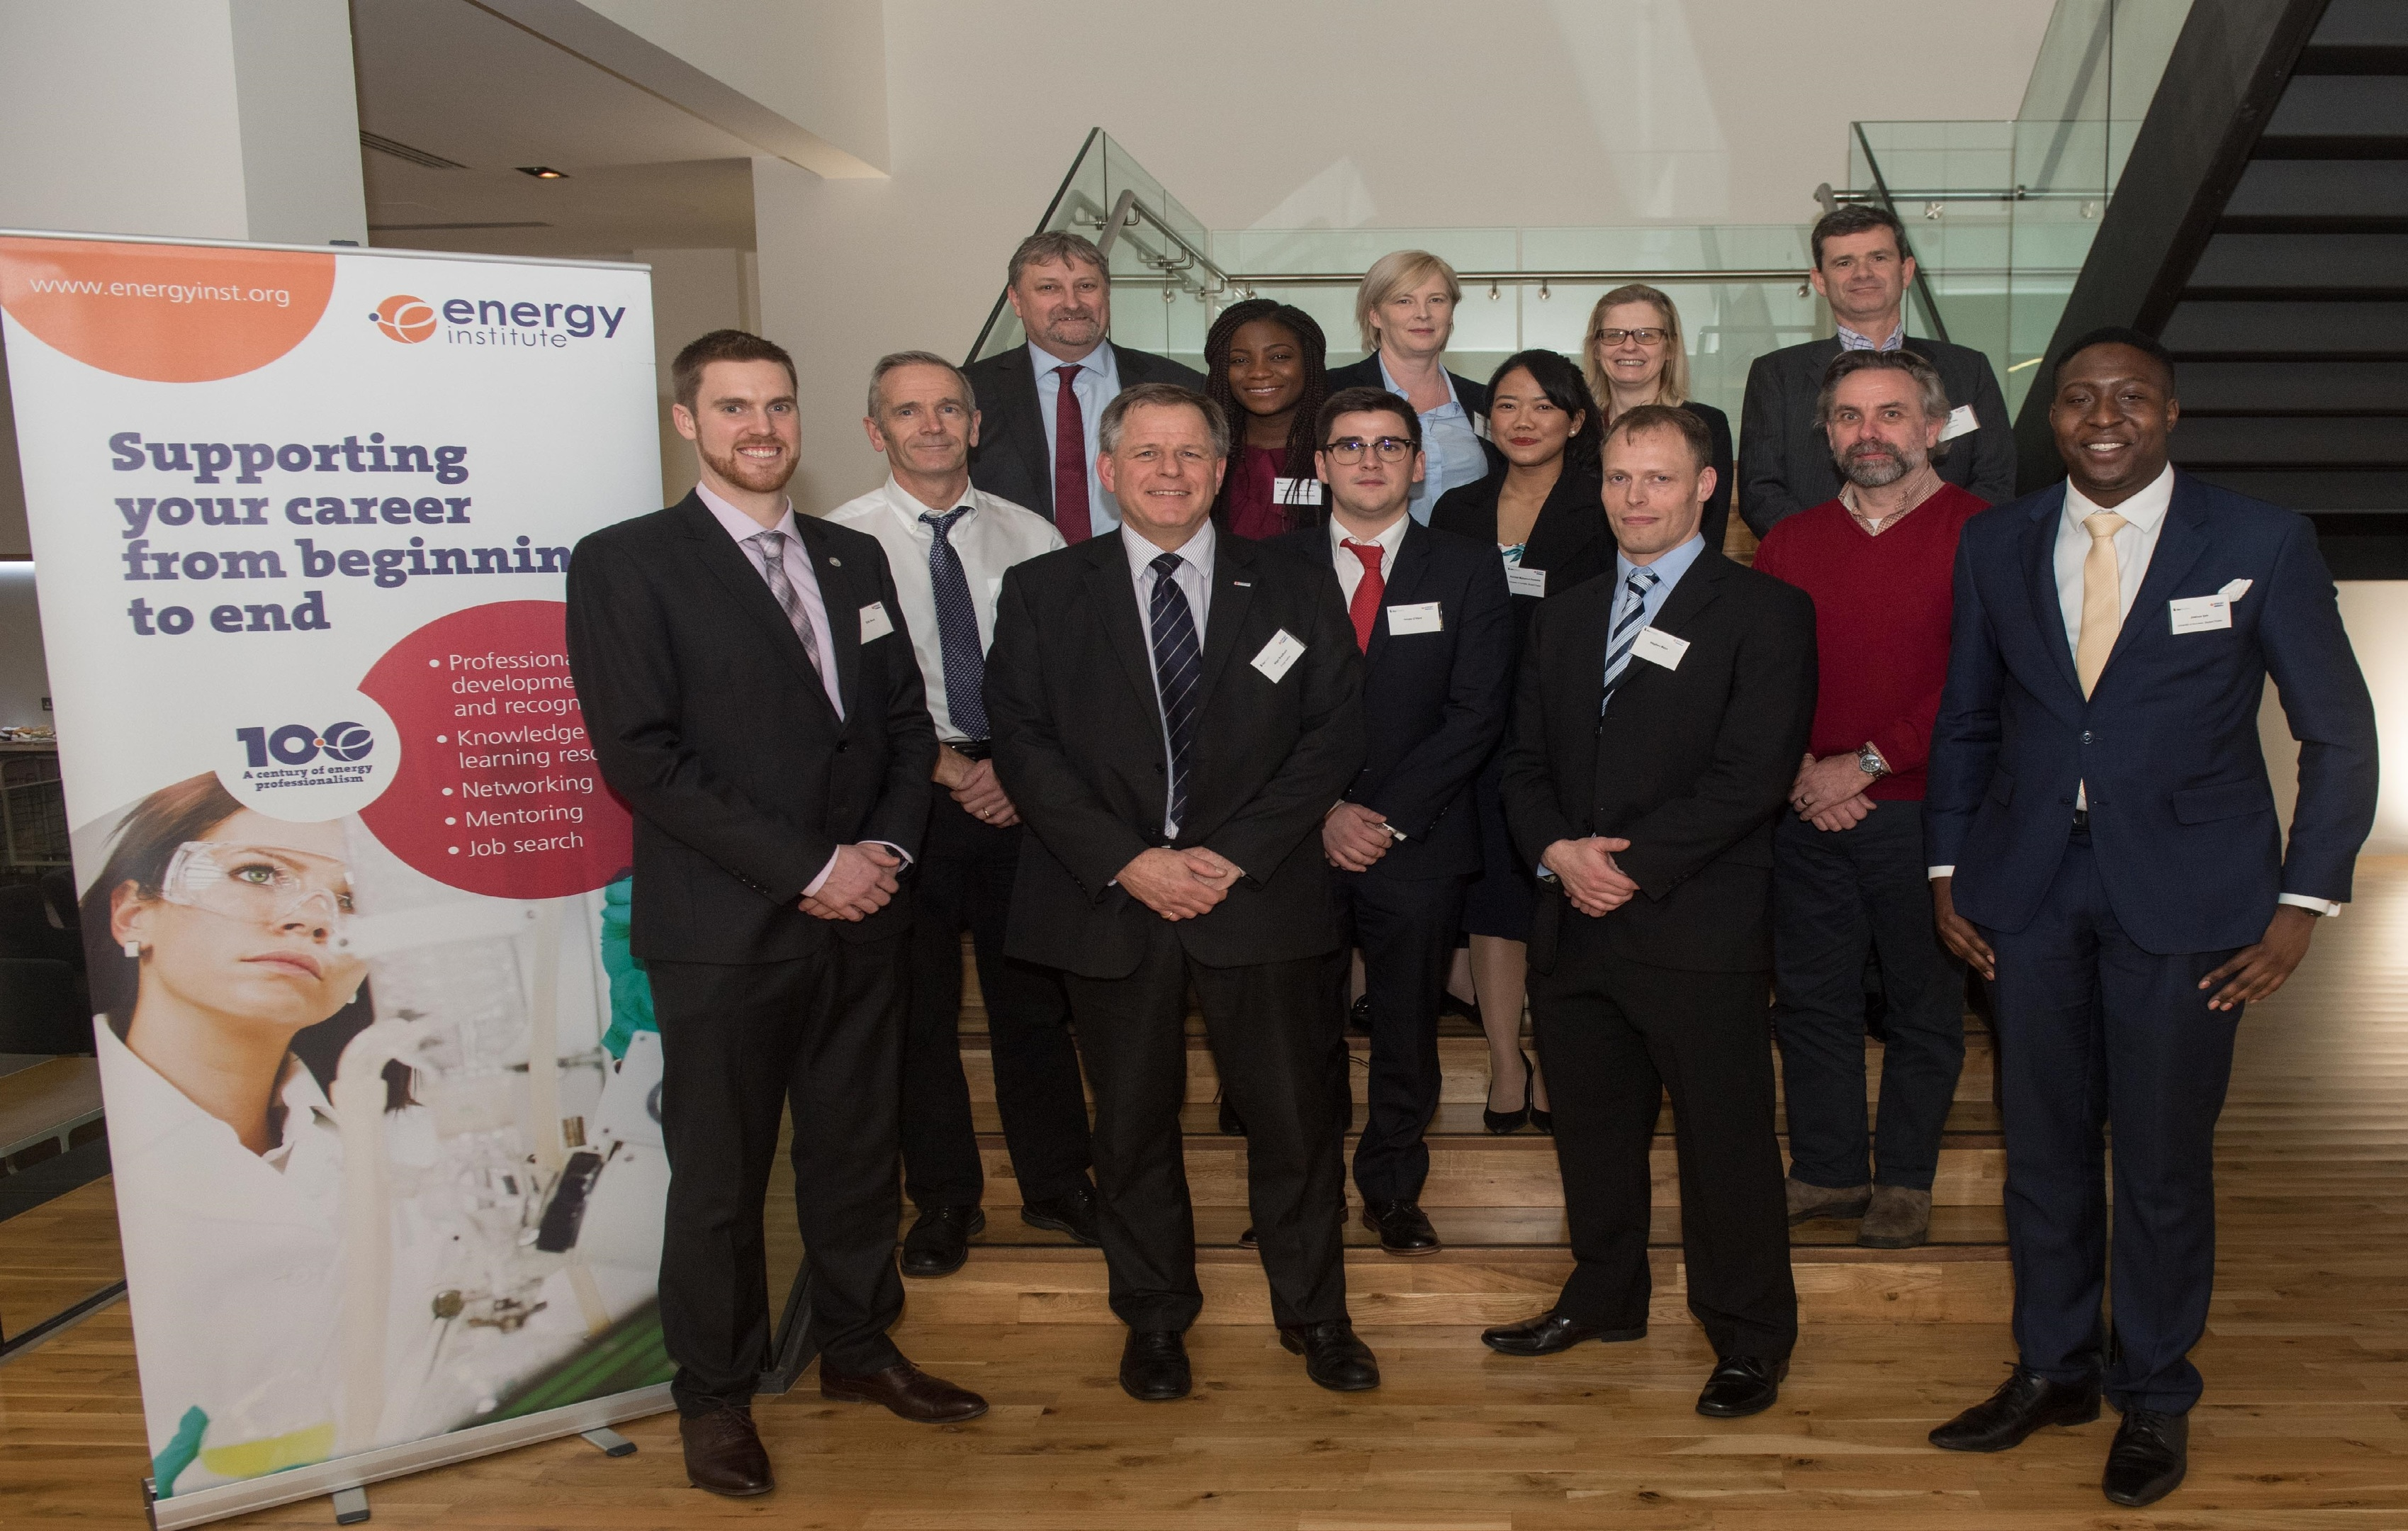 Aberdeen, Scotland, Tuesday 28th November 2017  MSc Best Student Energy Paper Competition with the Energy Institute in Aberdeen.   Picture by Michal Wachucik / Abermedia